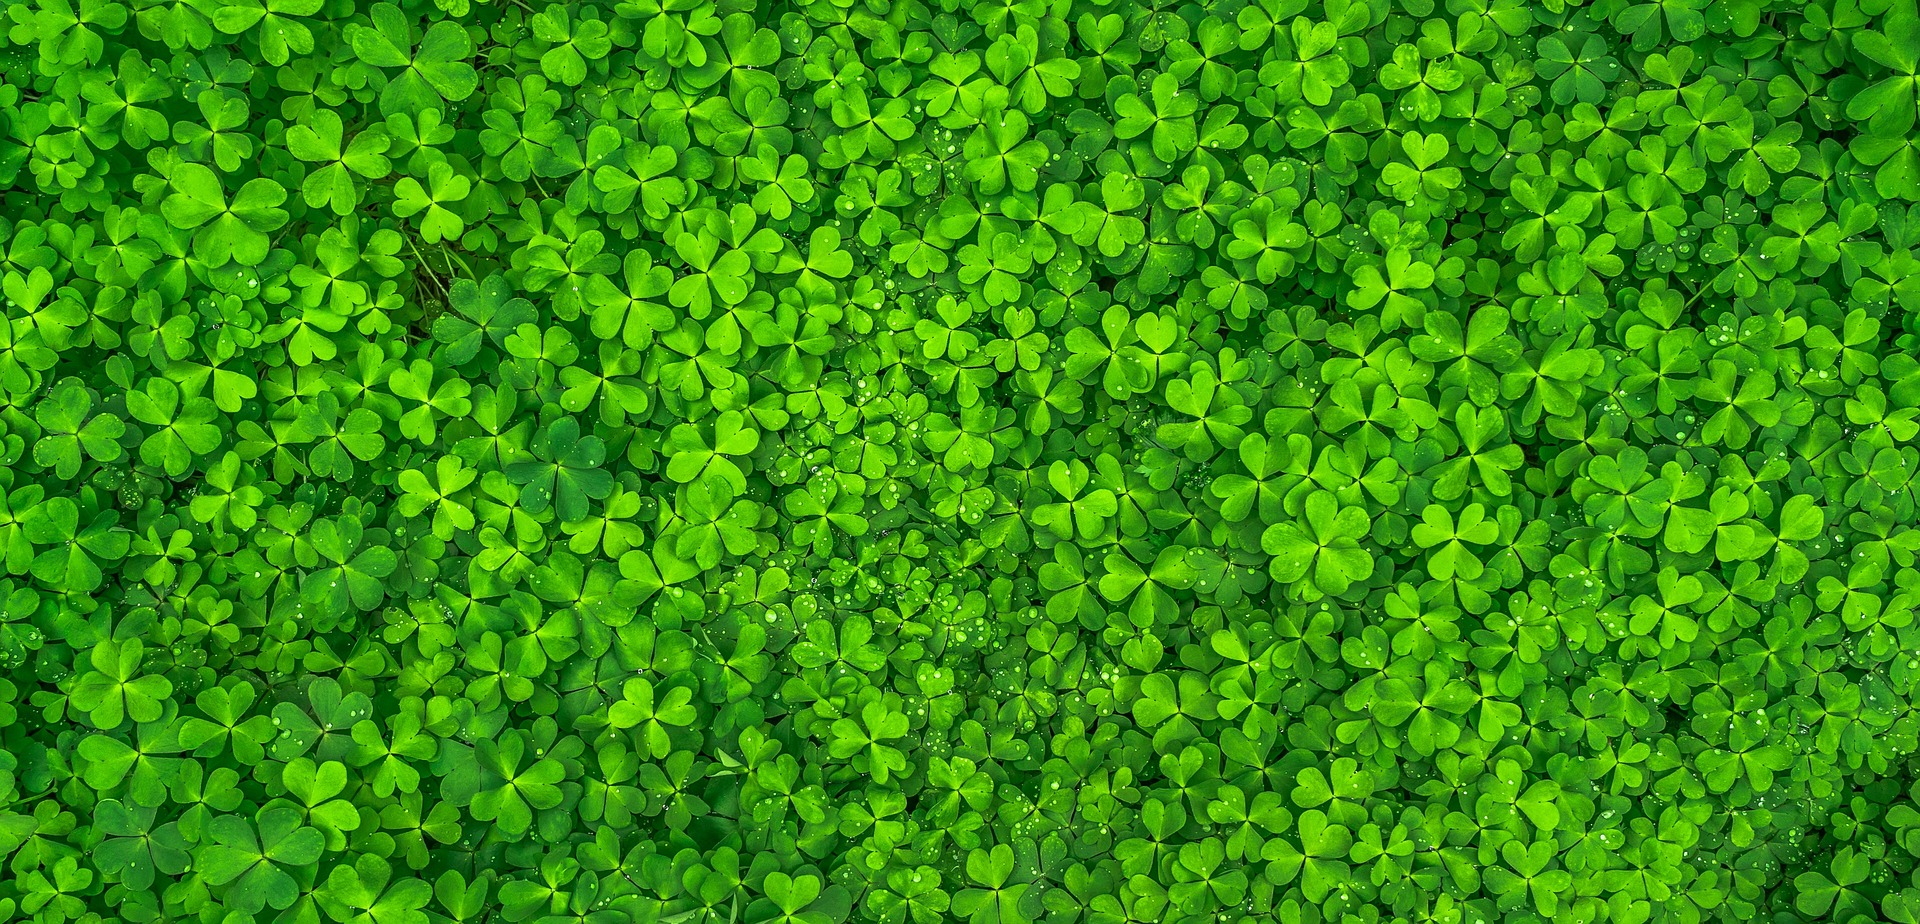 """ Leaf, clover, green "" by  Jeon Sang-O  is  licensed  by Pixabay."